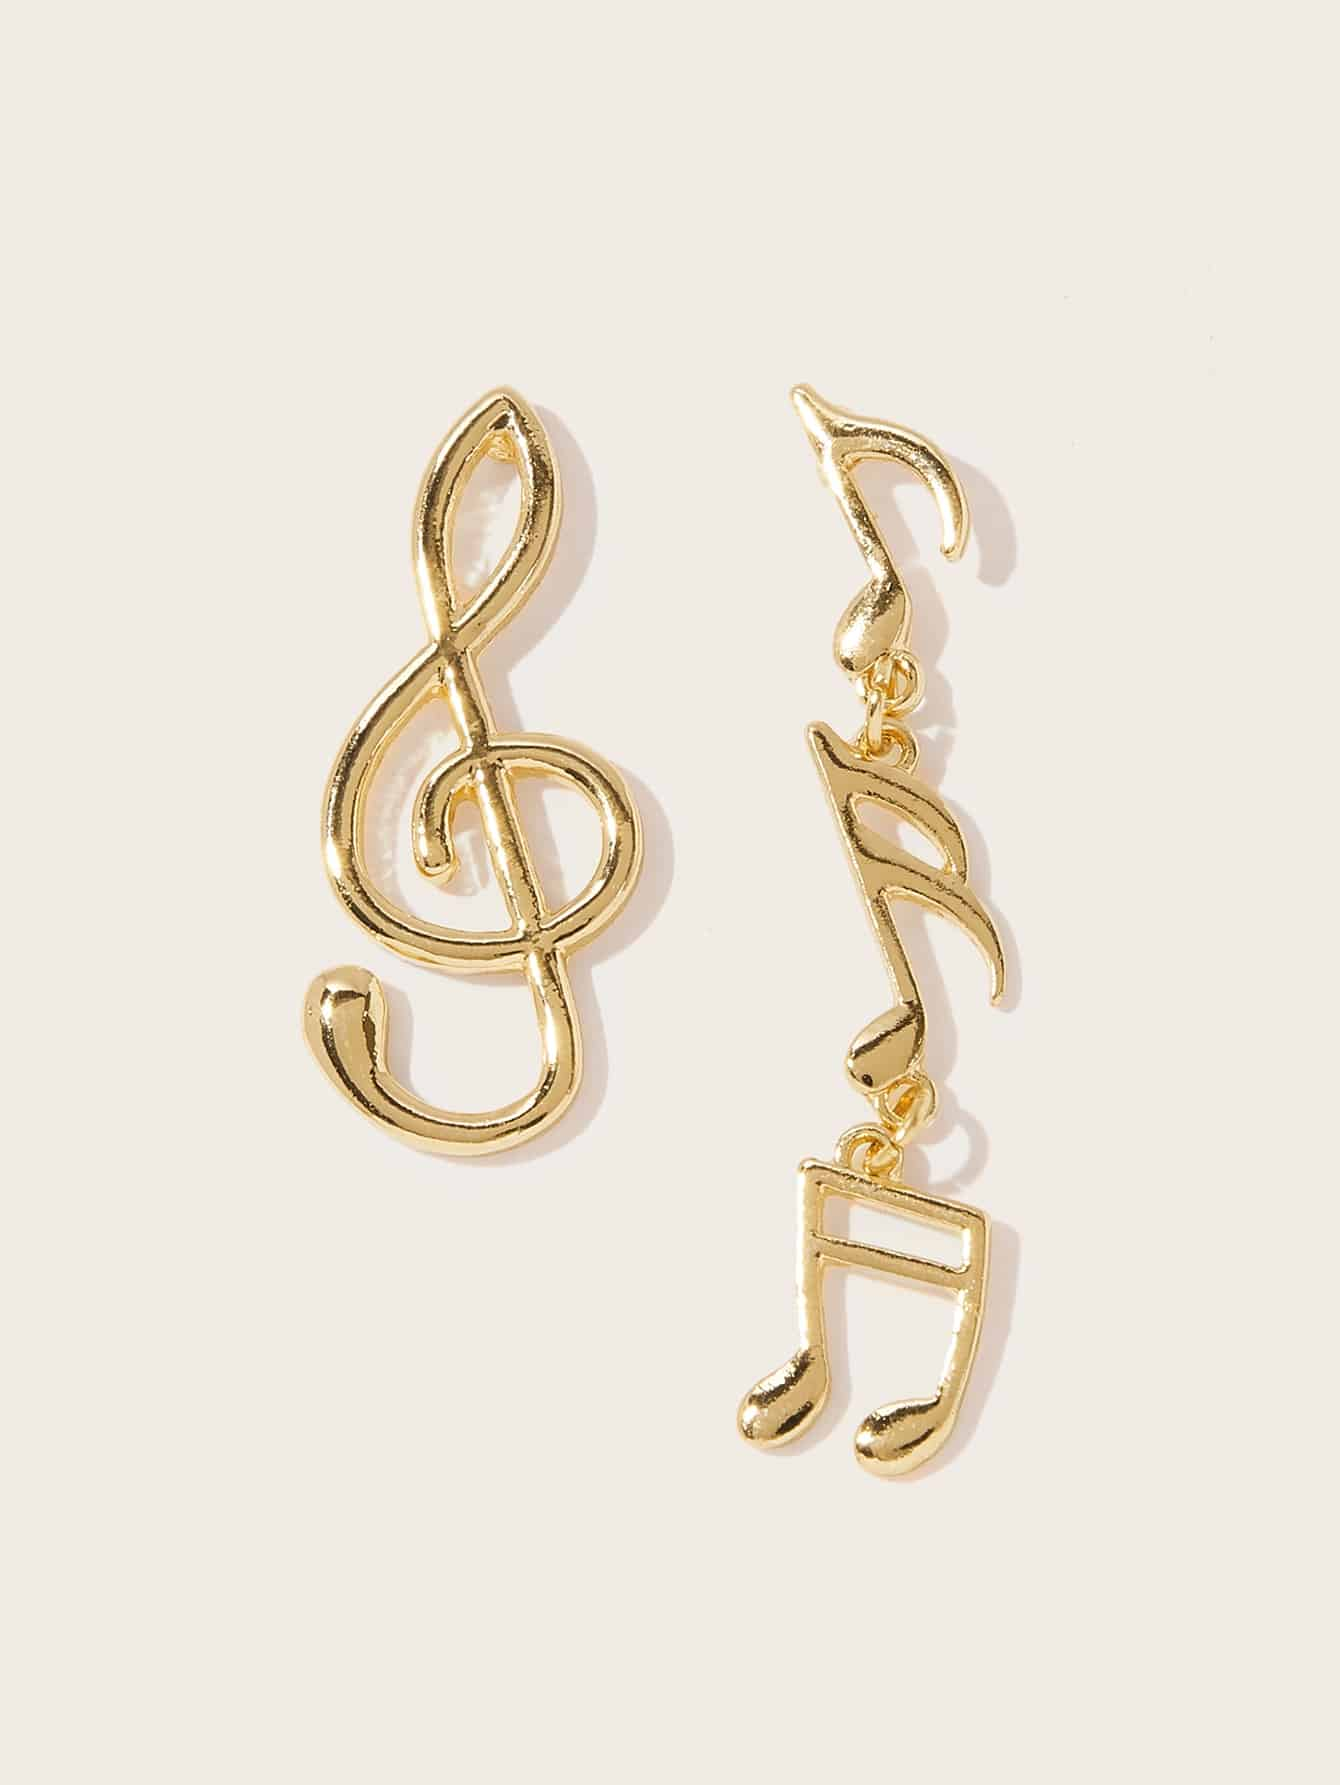 Golden Mismatched Music Note Shaped 1 Pair Dangle Earrings